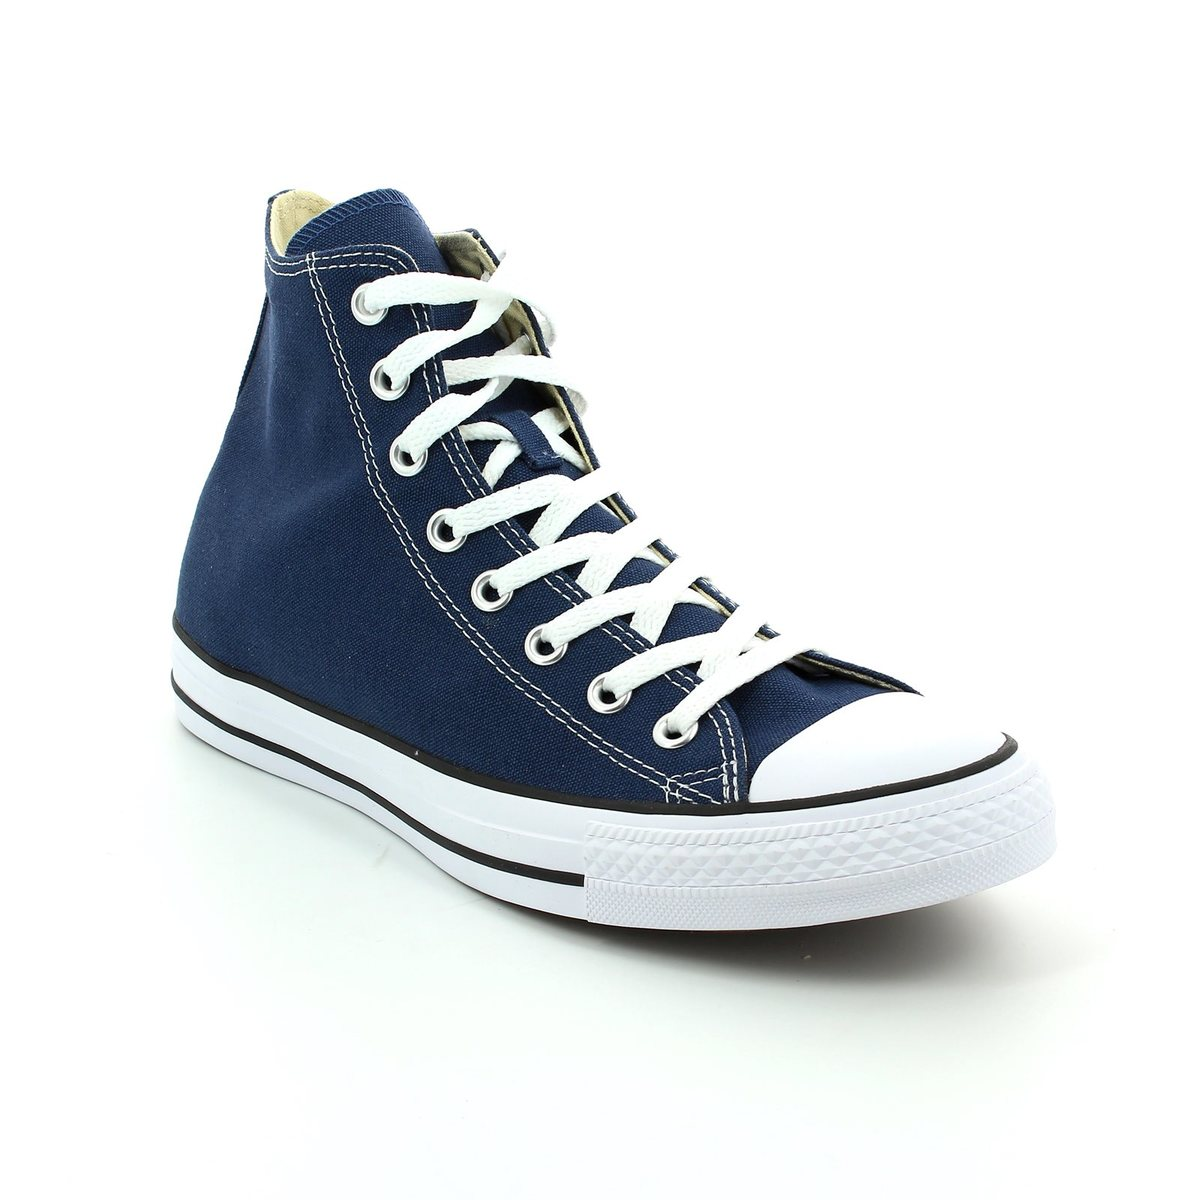 5fd69c098c13 Converse M9622C All Star HI tops Navy canvas trainers